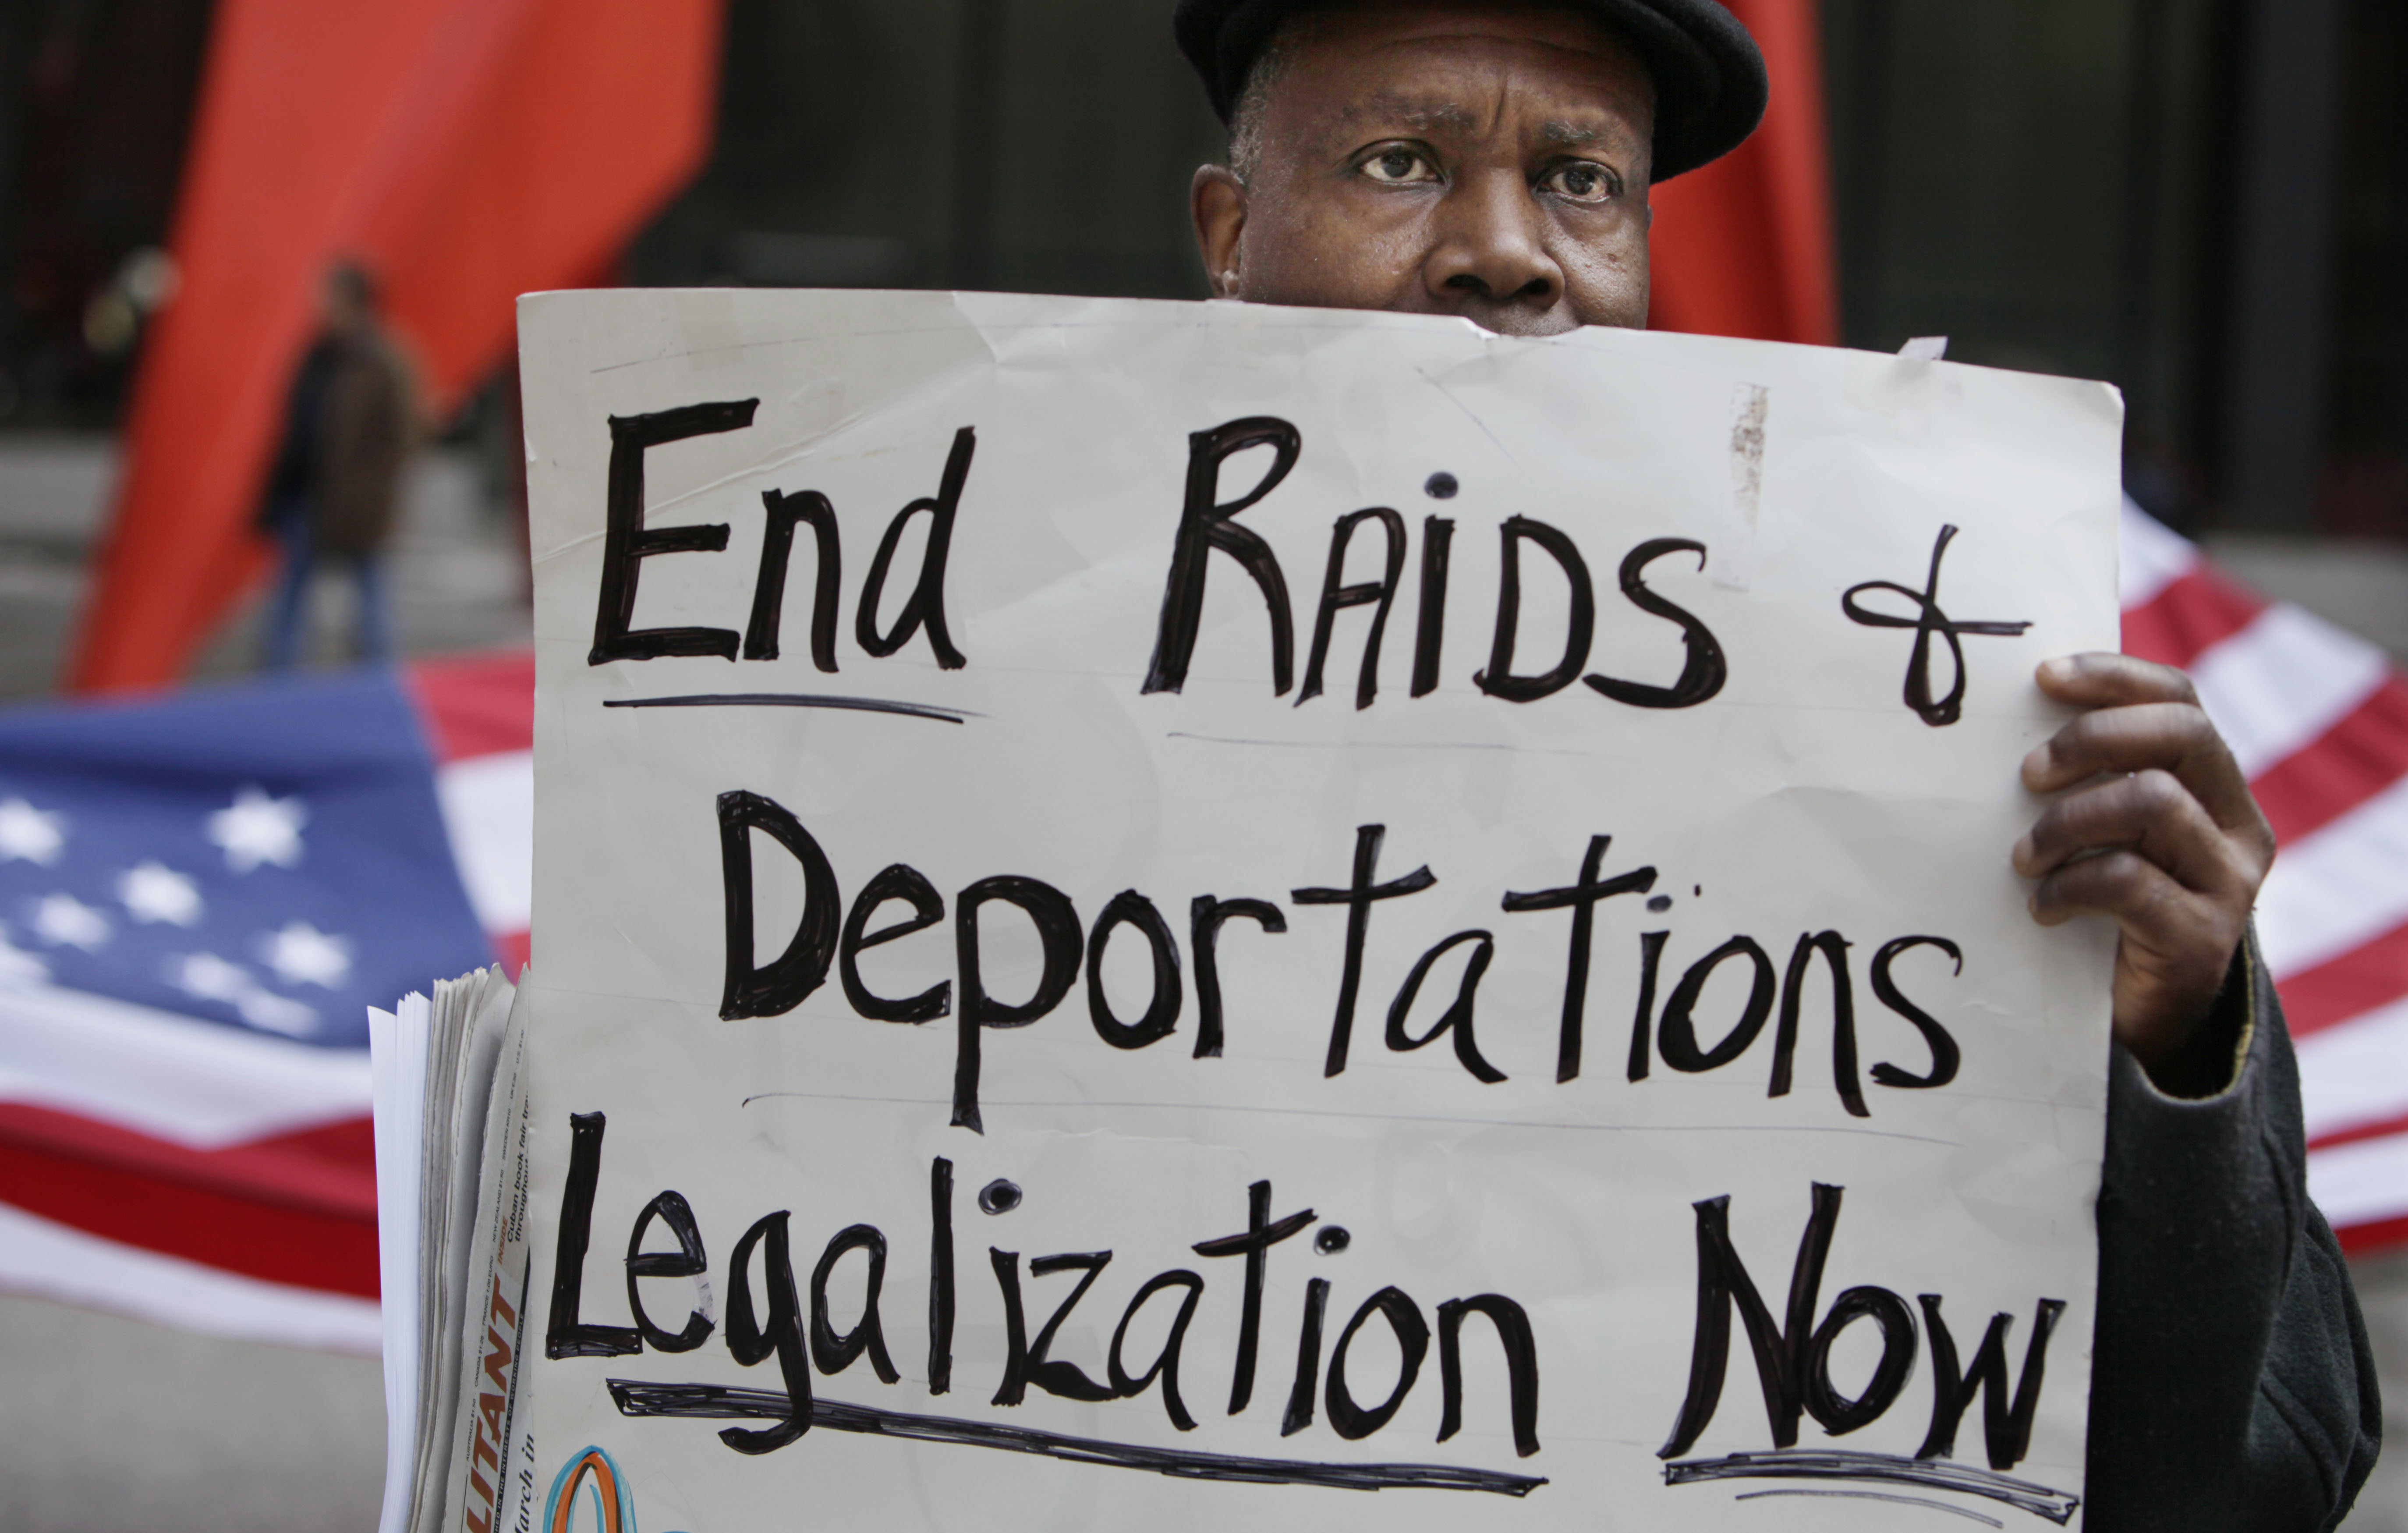 An immigration rally in Chicago.